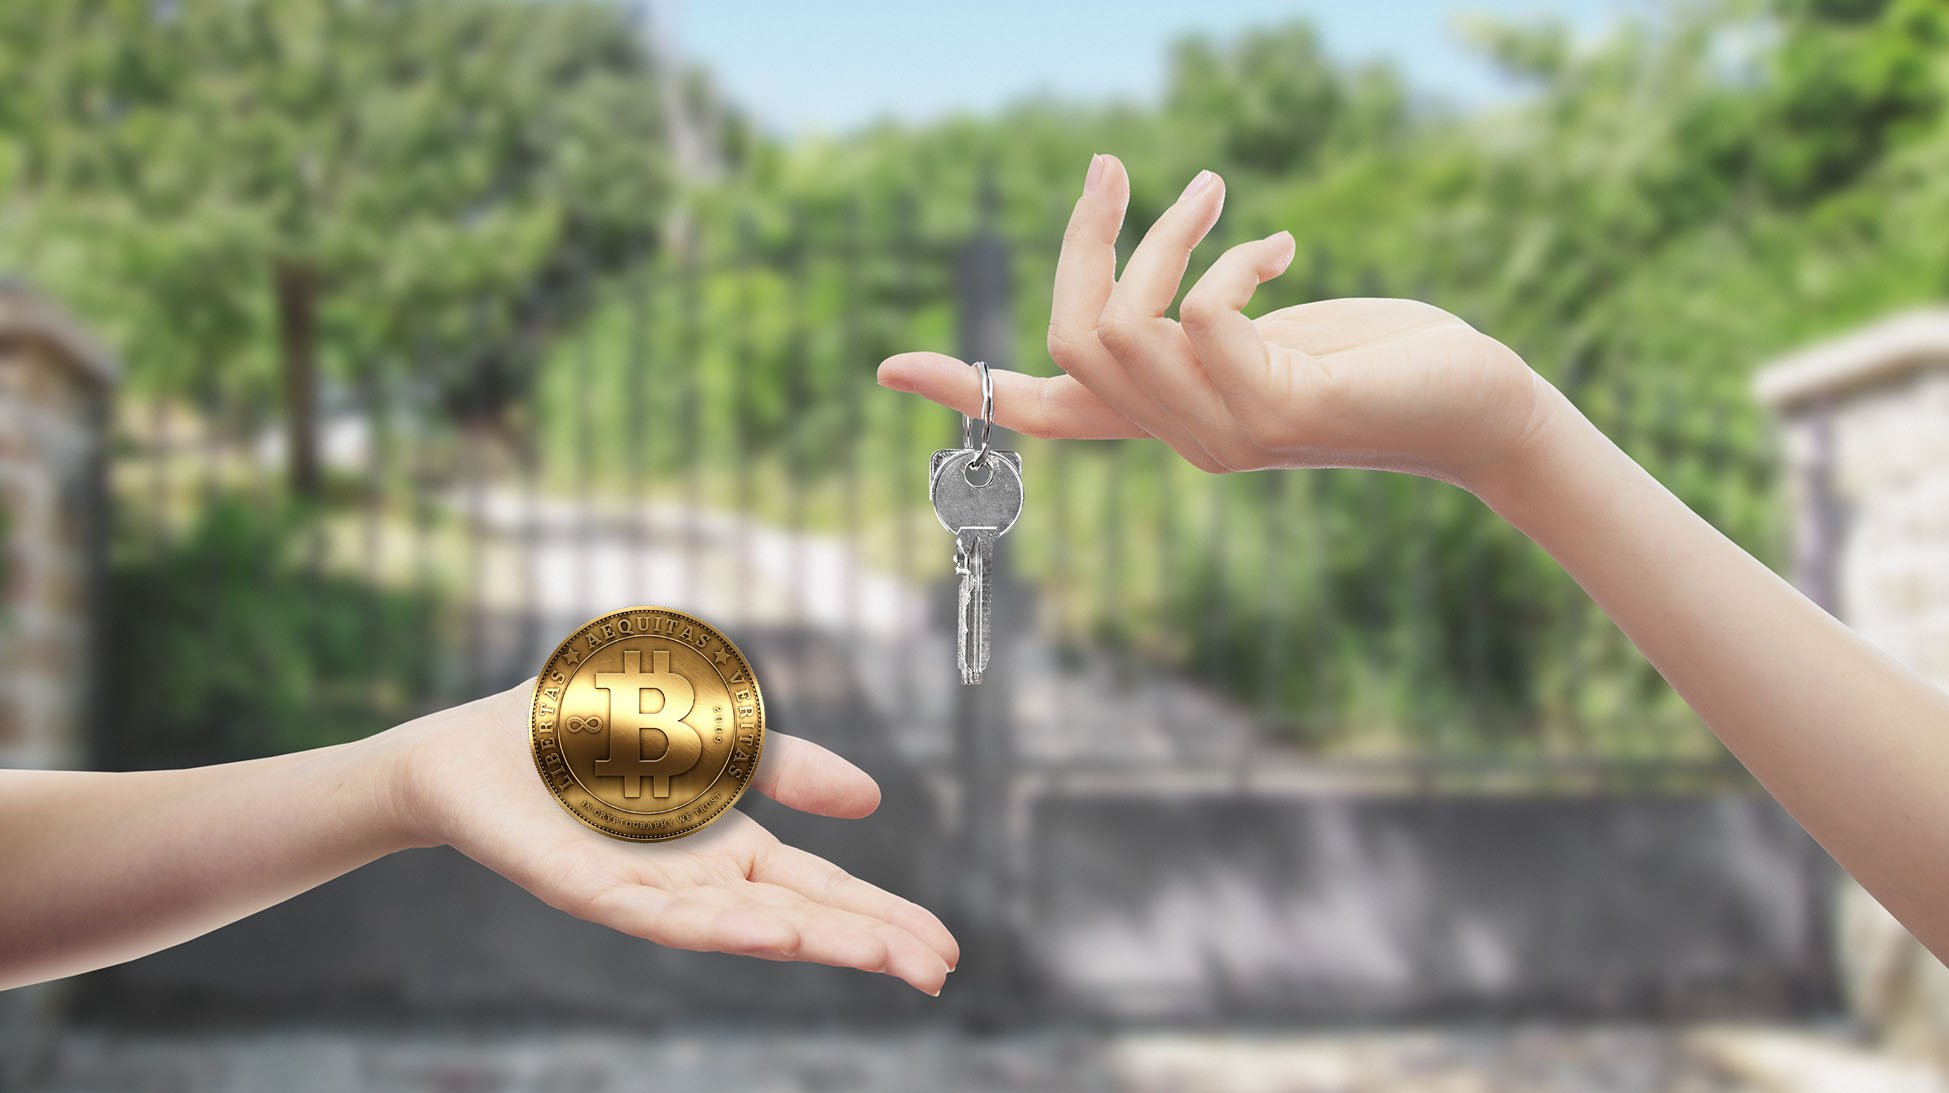 Russian Real Estate Firm Experiments With Selling a Luxury Mansion for Bitcoin